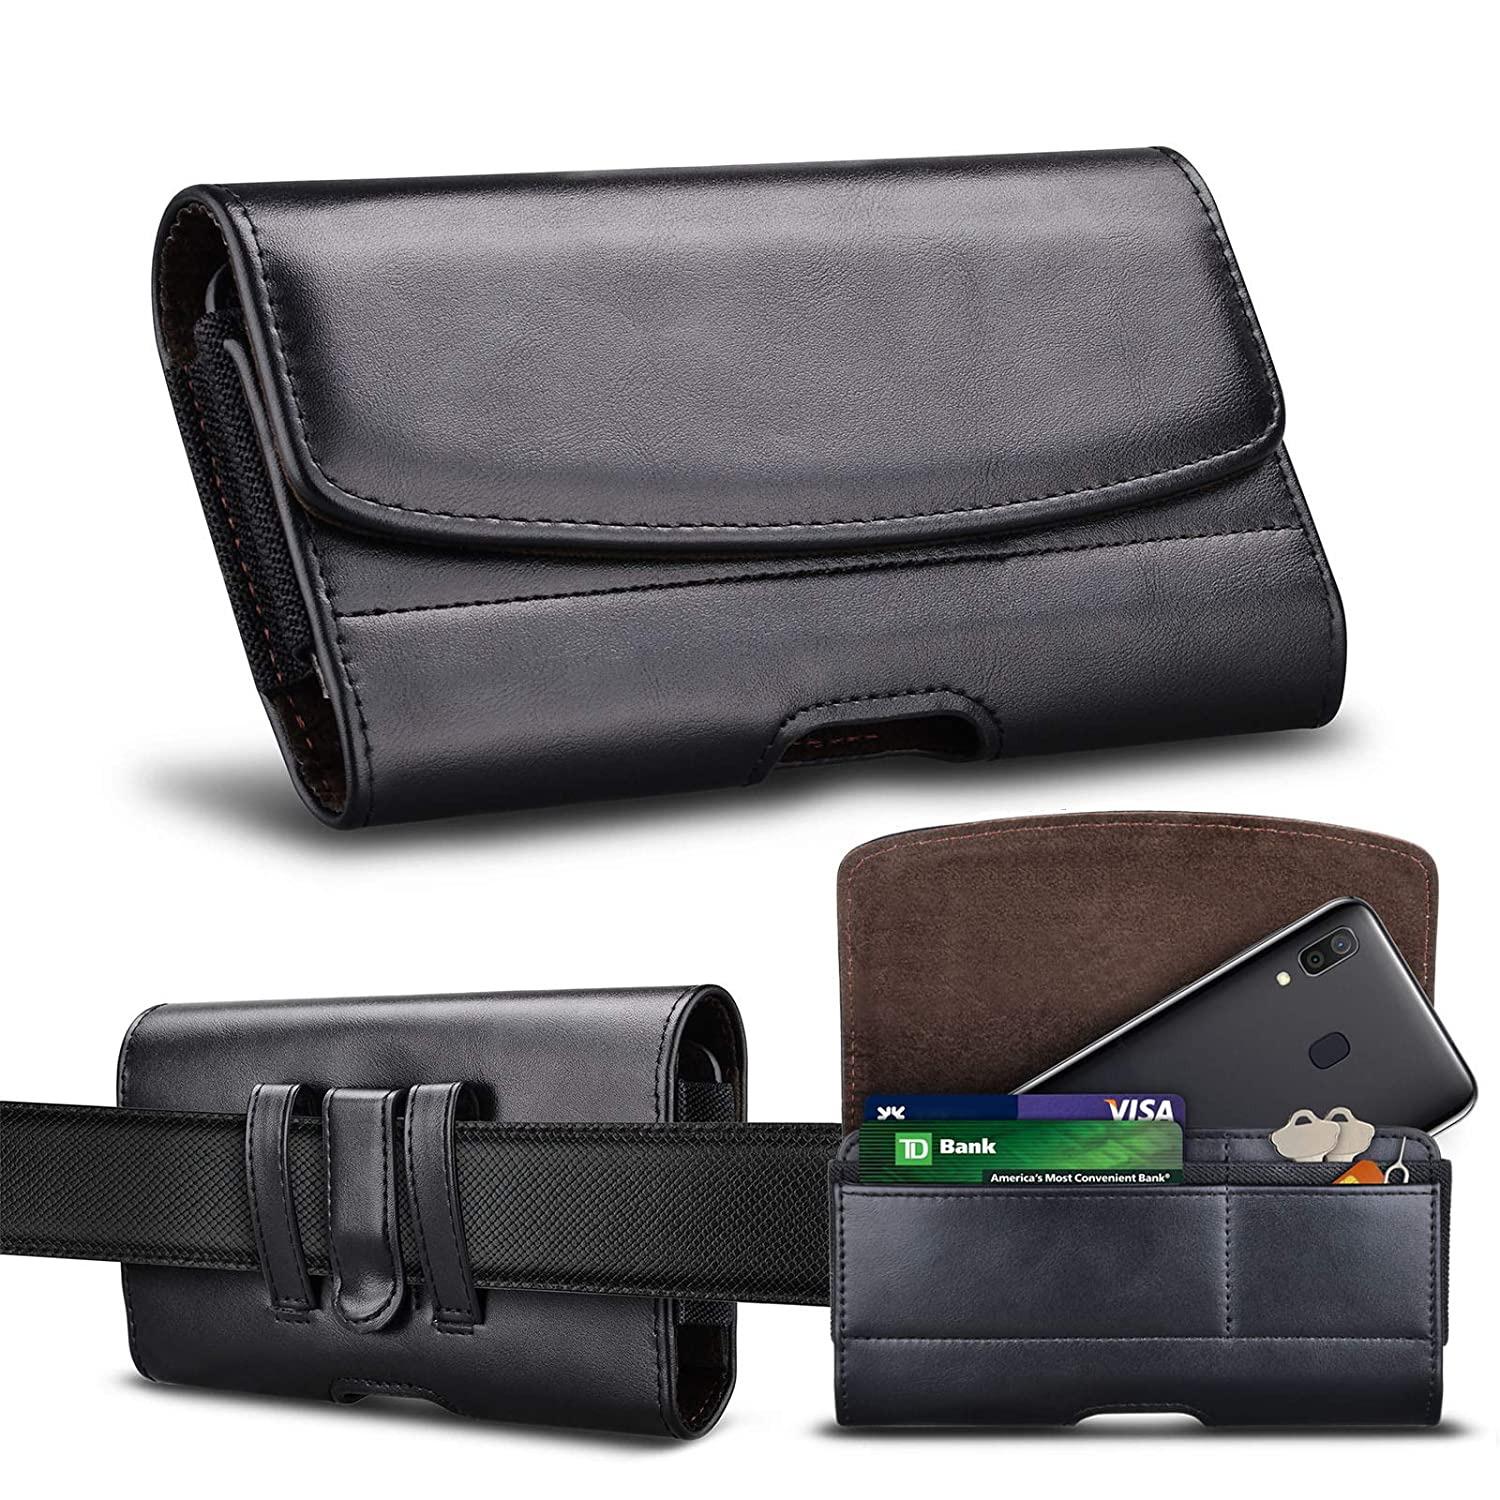 Tiflook Horizontal Phone Holster Fit for LG V30/Phoenix Plus/Phoenix 4/K30/G7/G6 ThinQ/Aristo 3 and More, Premium Leather Carrying Phone Pouch Belt Clip Case Holster with Card Holder Slot (Black)